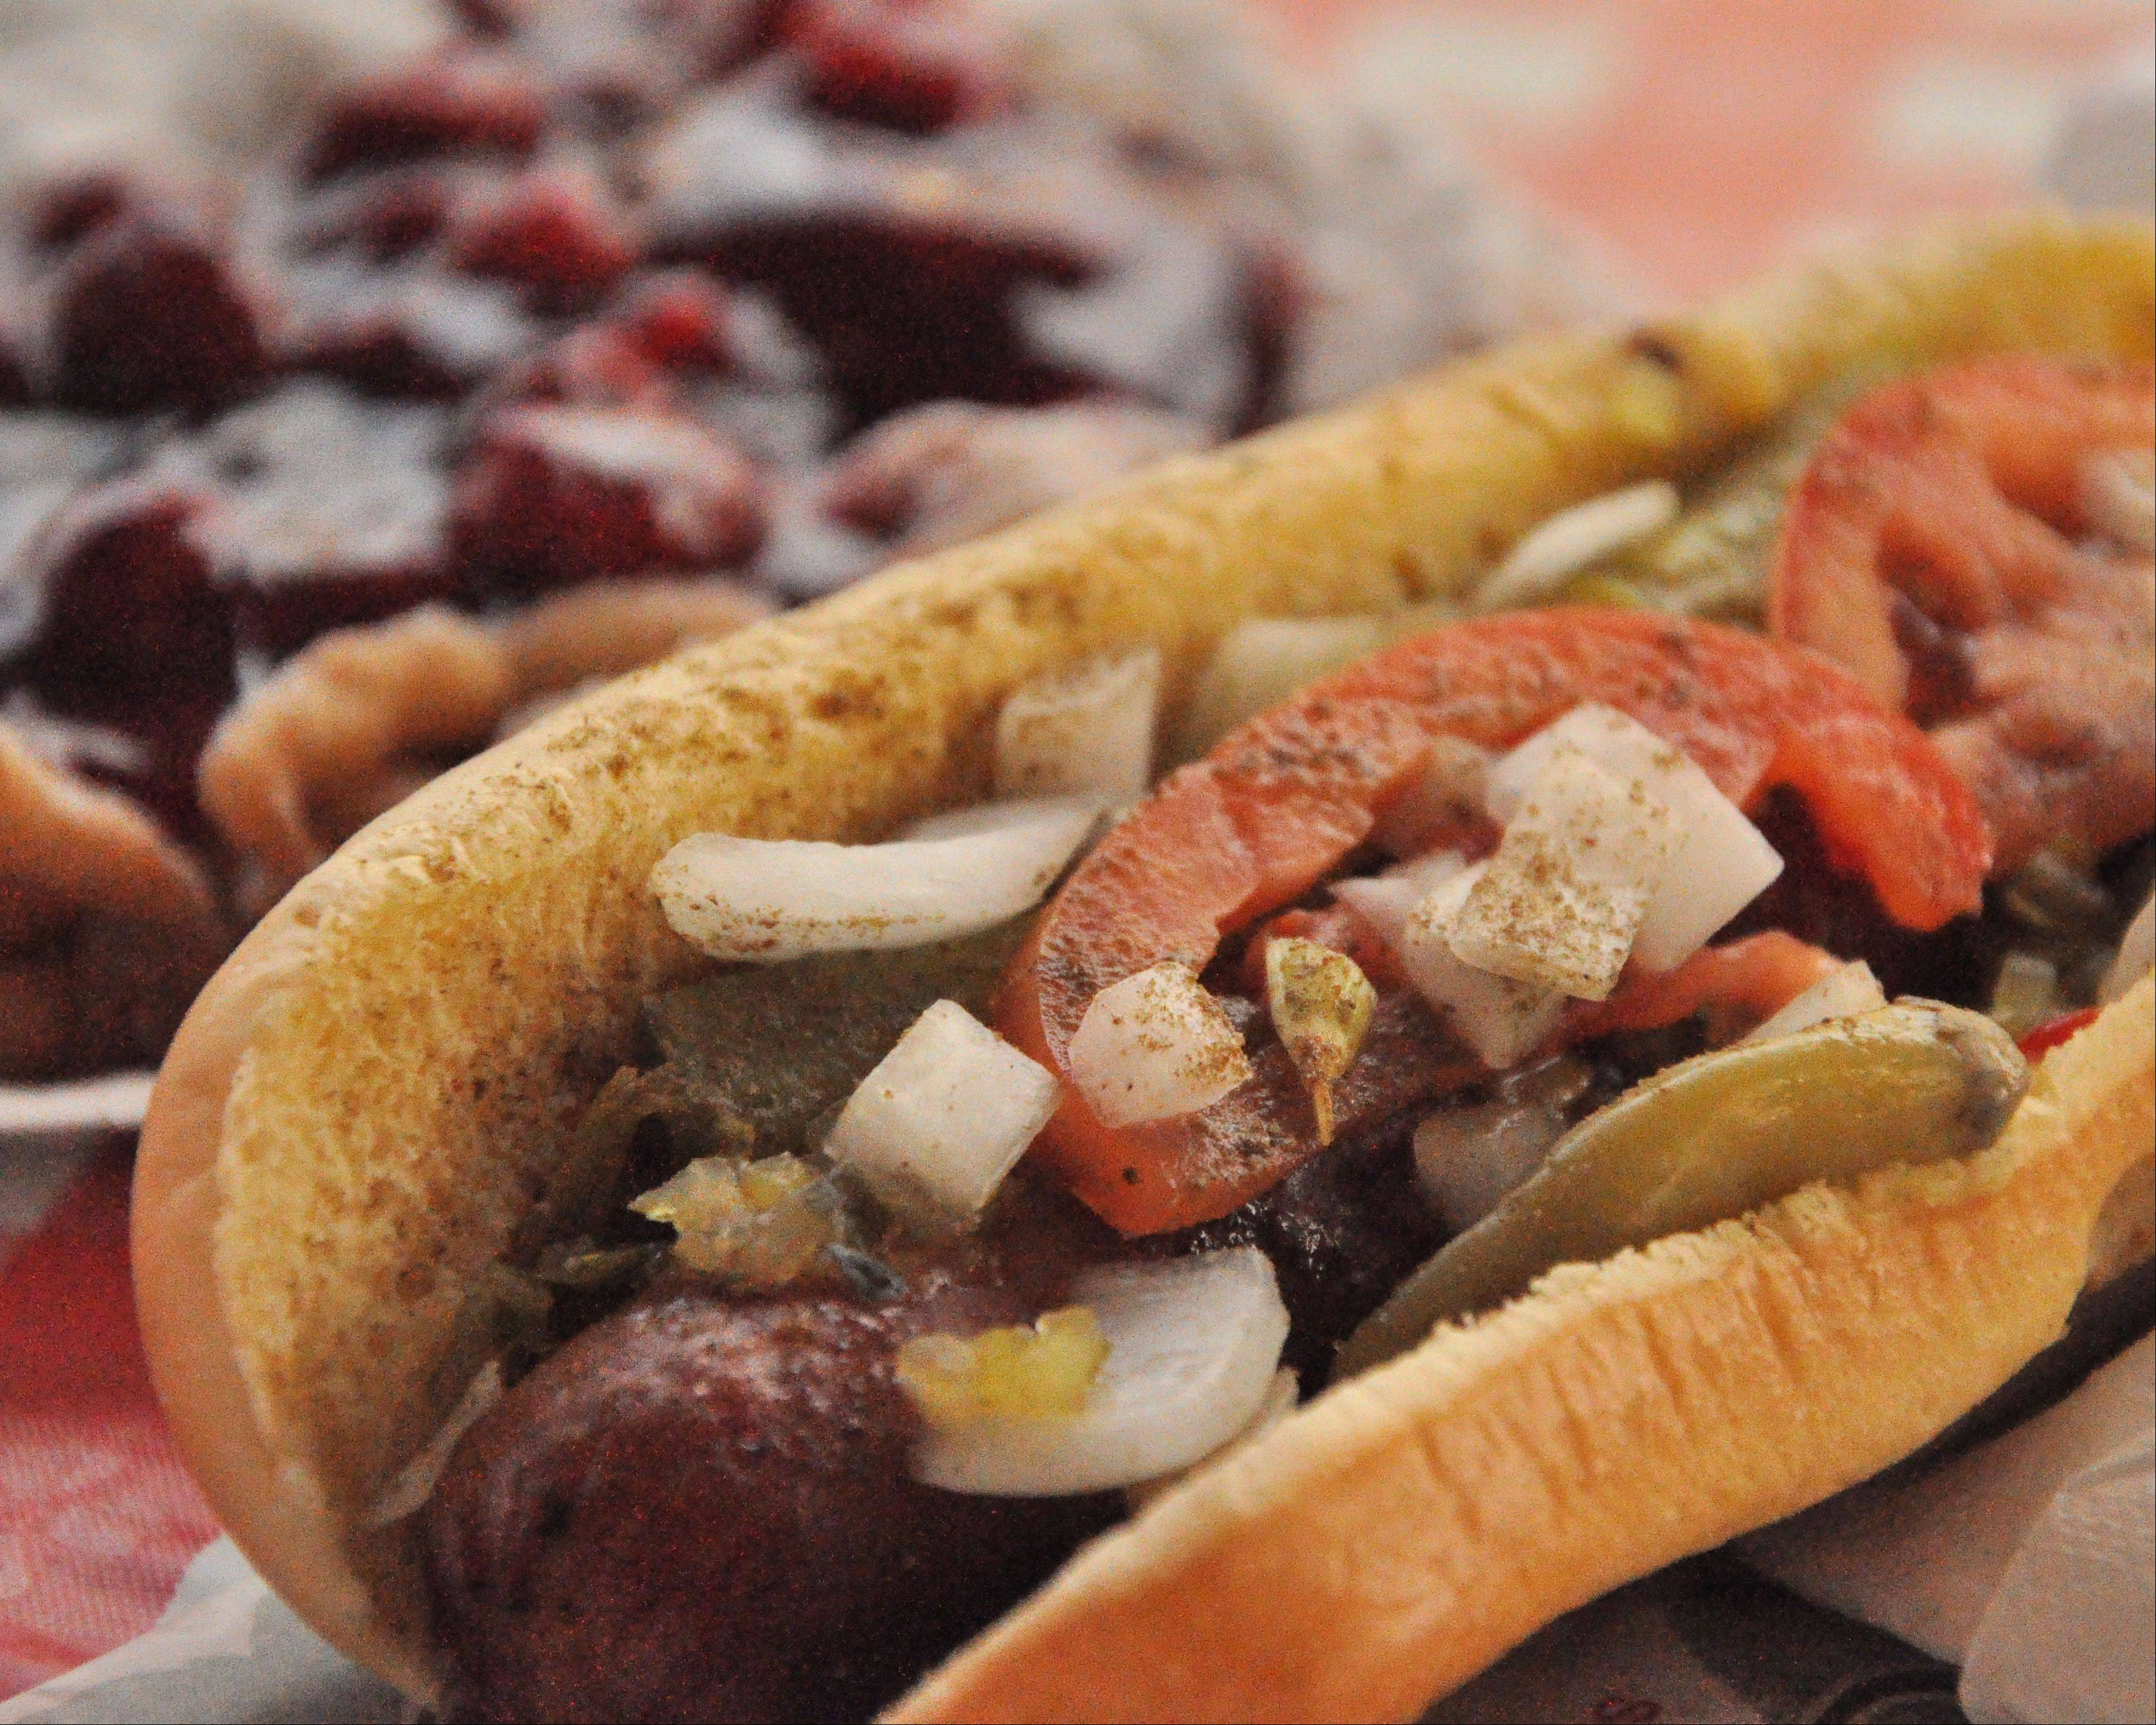 Courtesy of Patrick SpencePatrick Spence of Naperville won first place in the inaugural DuPage County Fair Photography Shoot-Out contest with his close-up of a hot dog with the works.